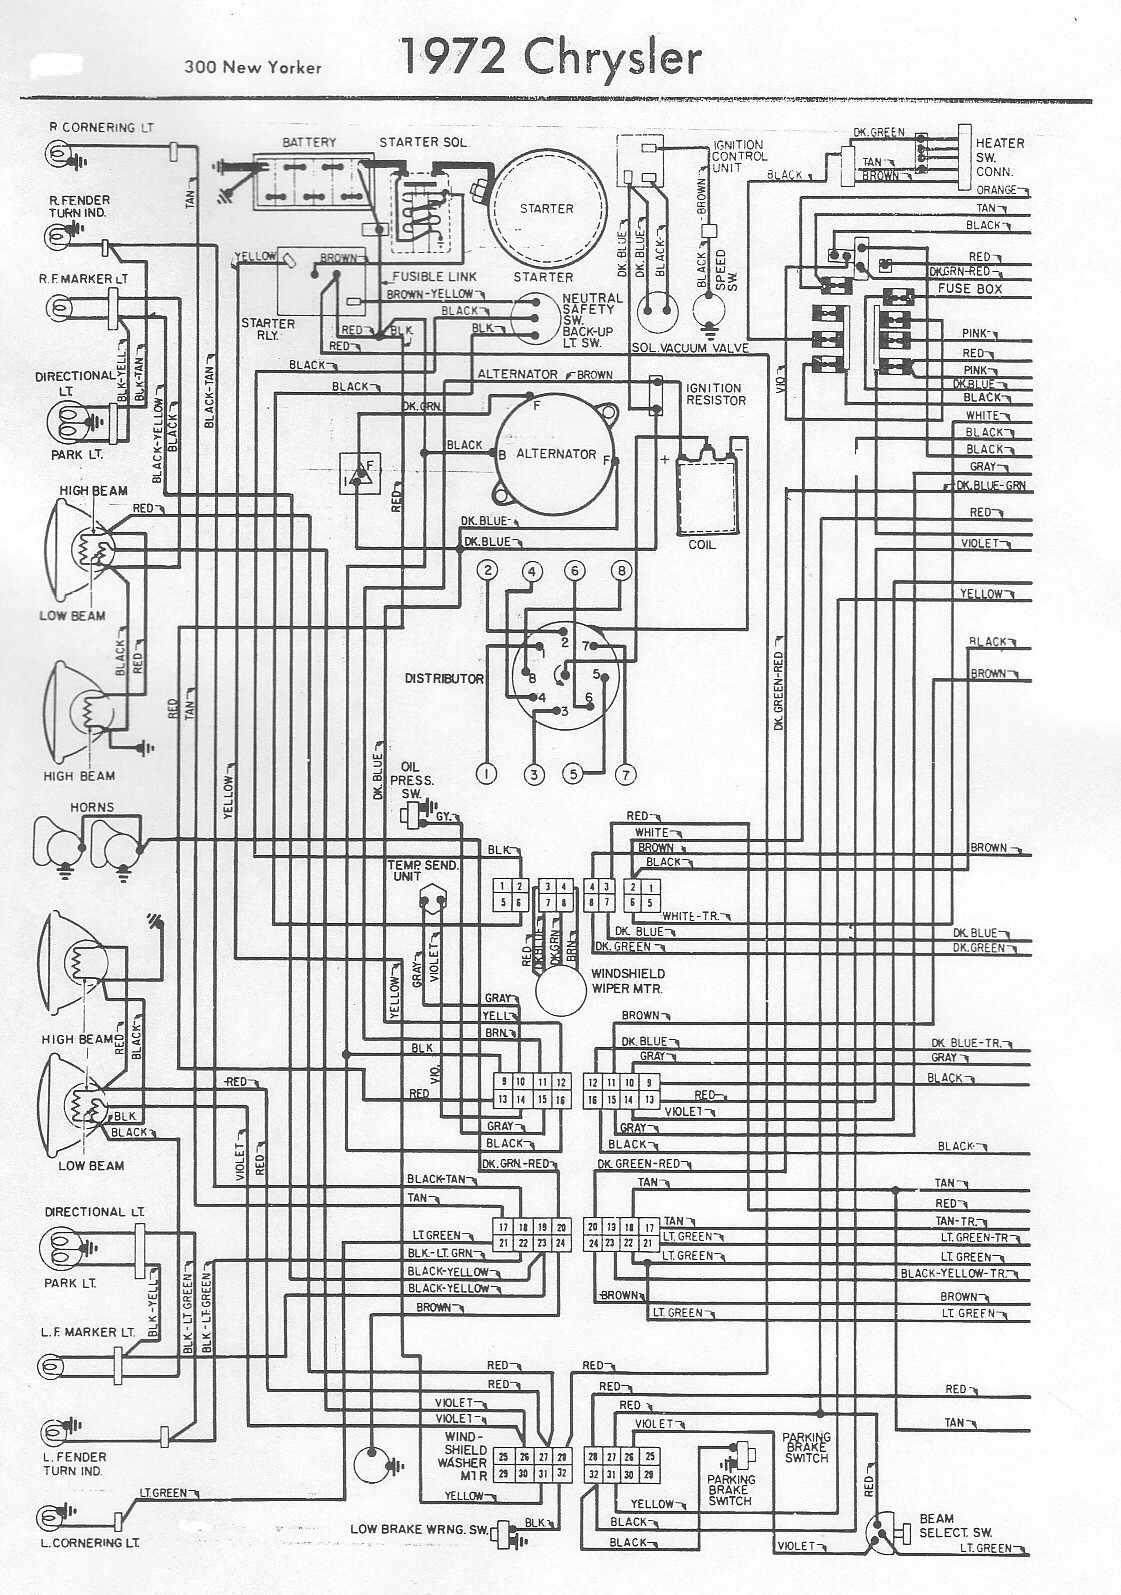 electrical wiring diagram of 1972 chrysler 300 new yorker?t=1508393590 chrysler car manuals, wiring diagrams pdf & fault codes 2006 chrysler 300 limited radio wiring diagram at soozxer.org